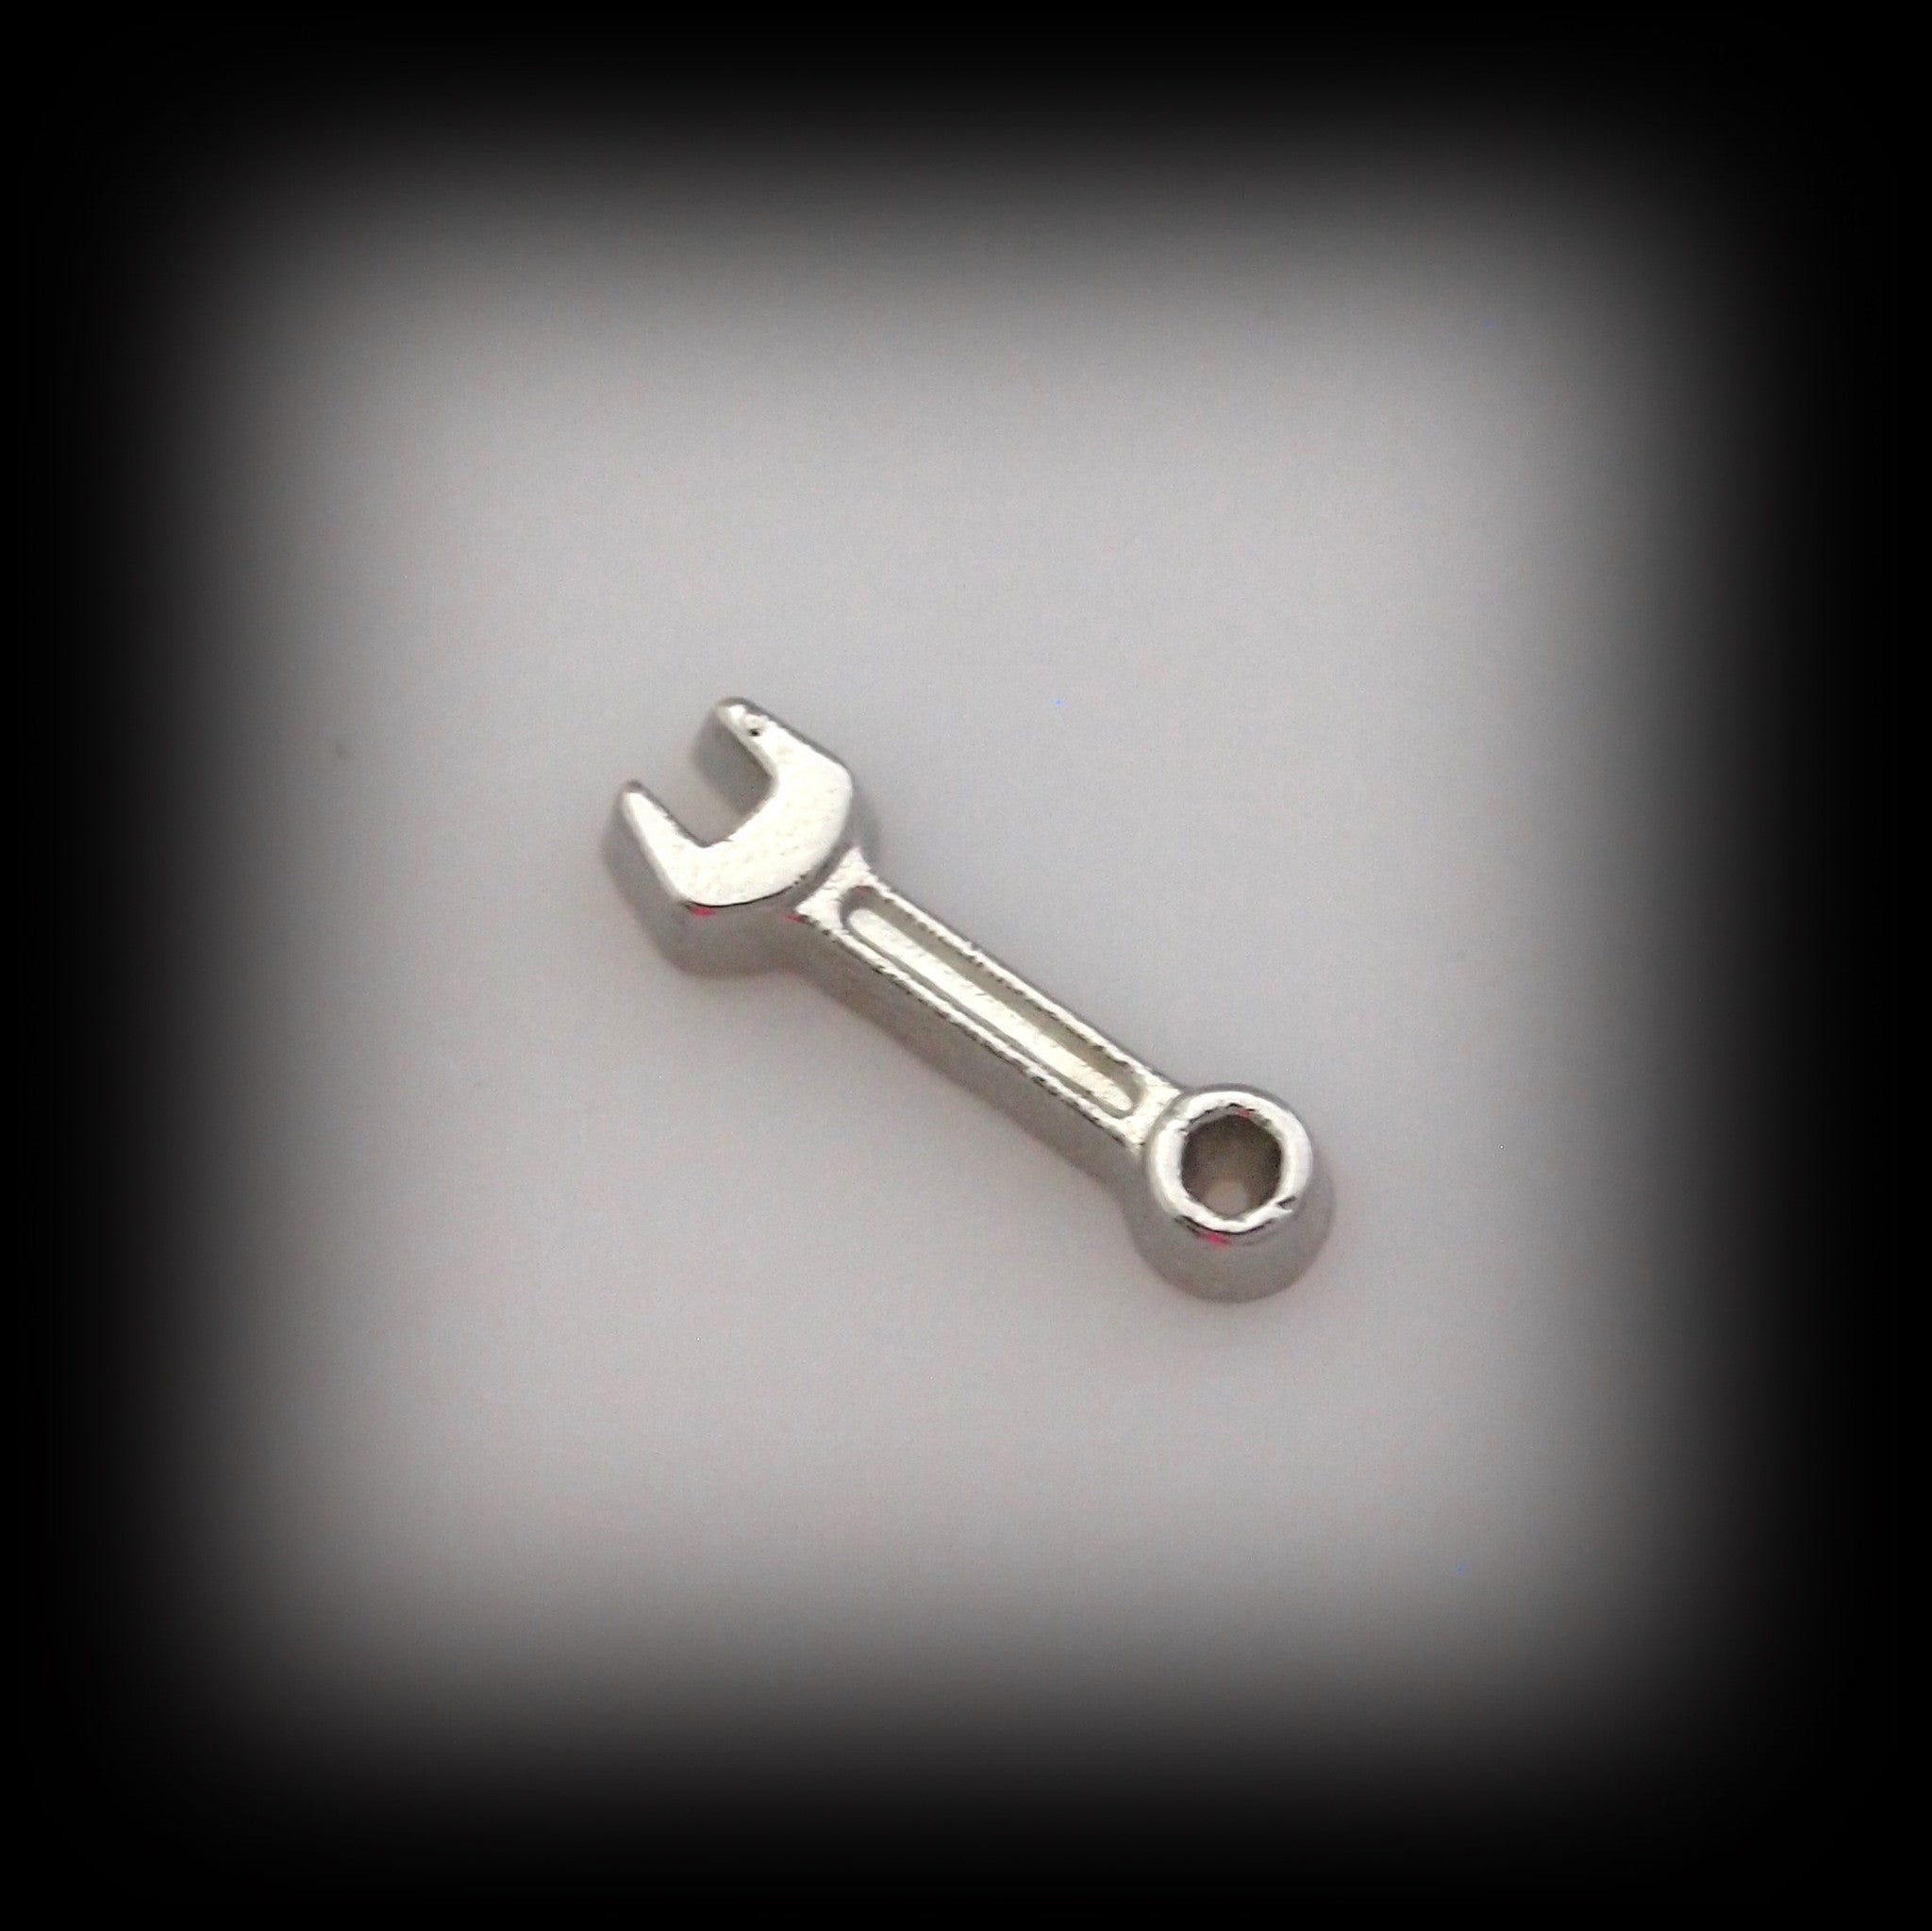 Spanner Floating Charm - Find Something Special